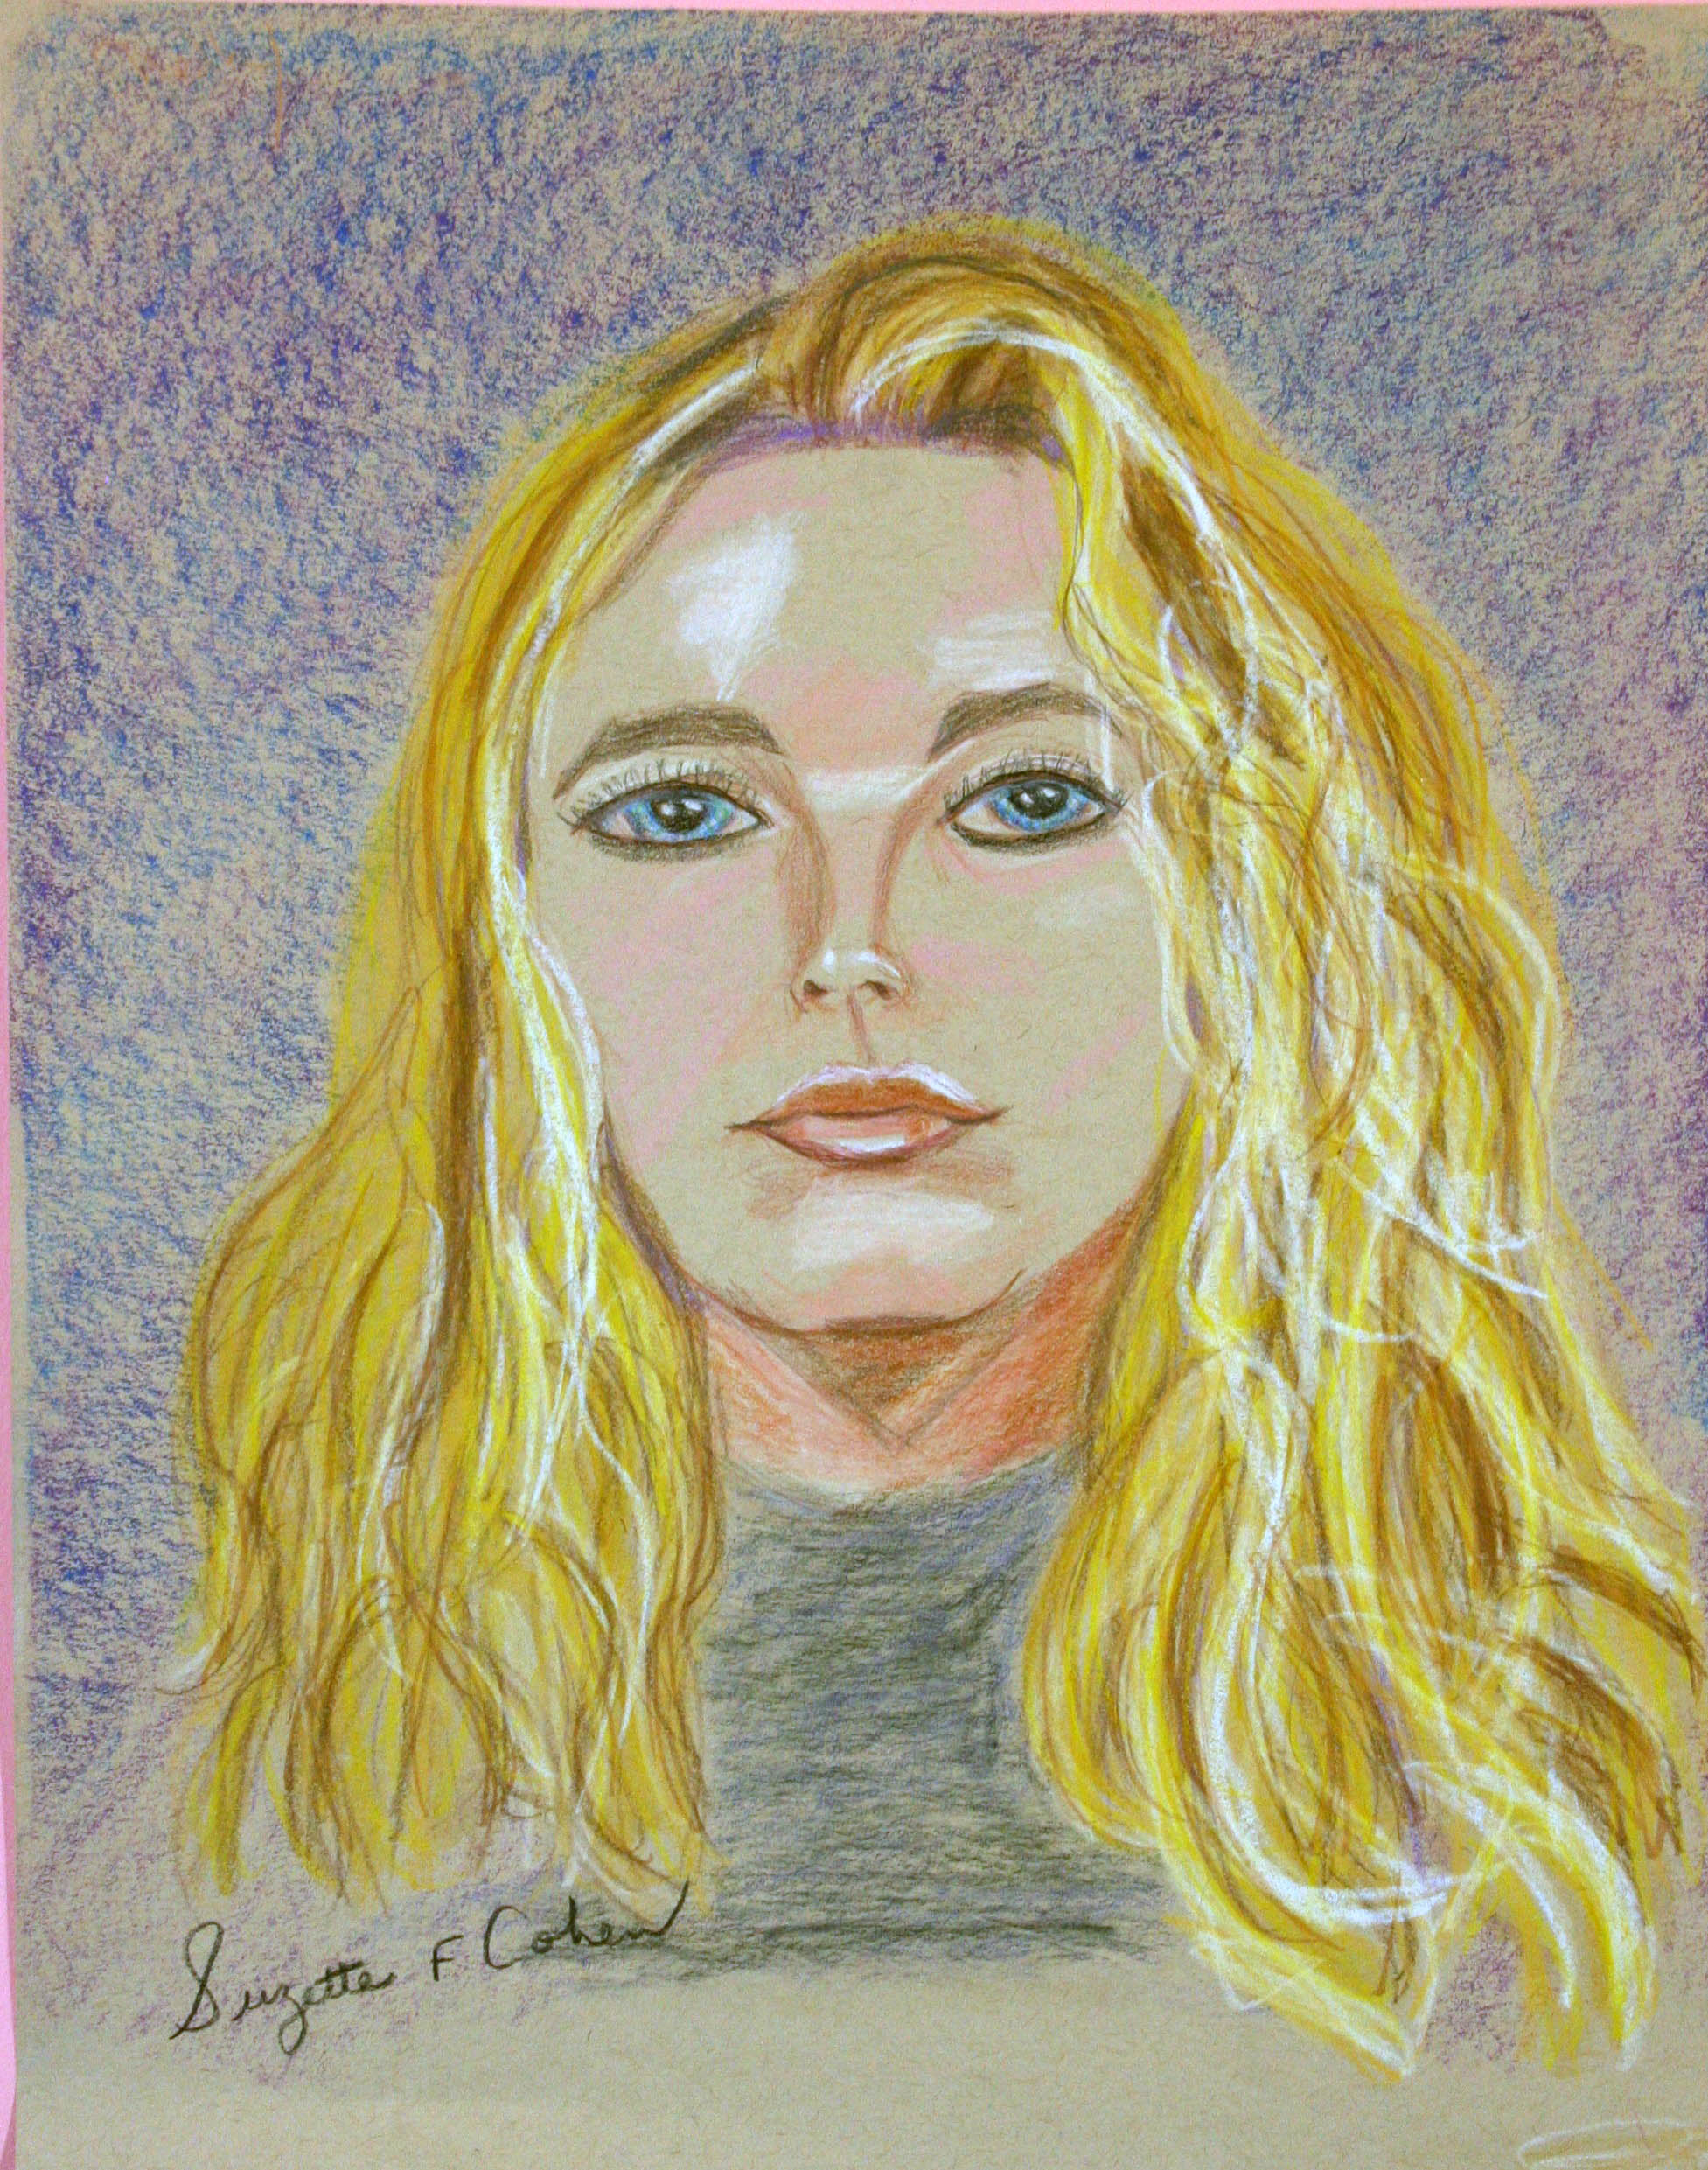 Suzette Cohen did this pastel drawing.